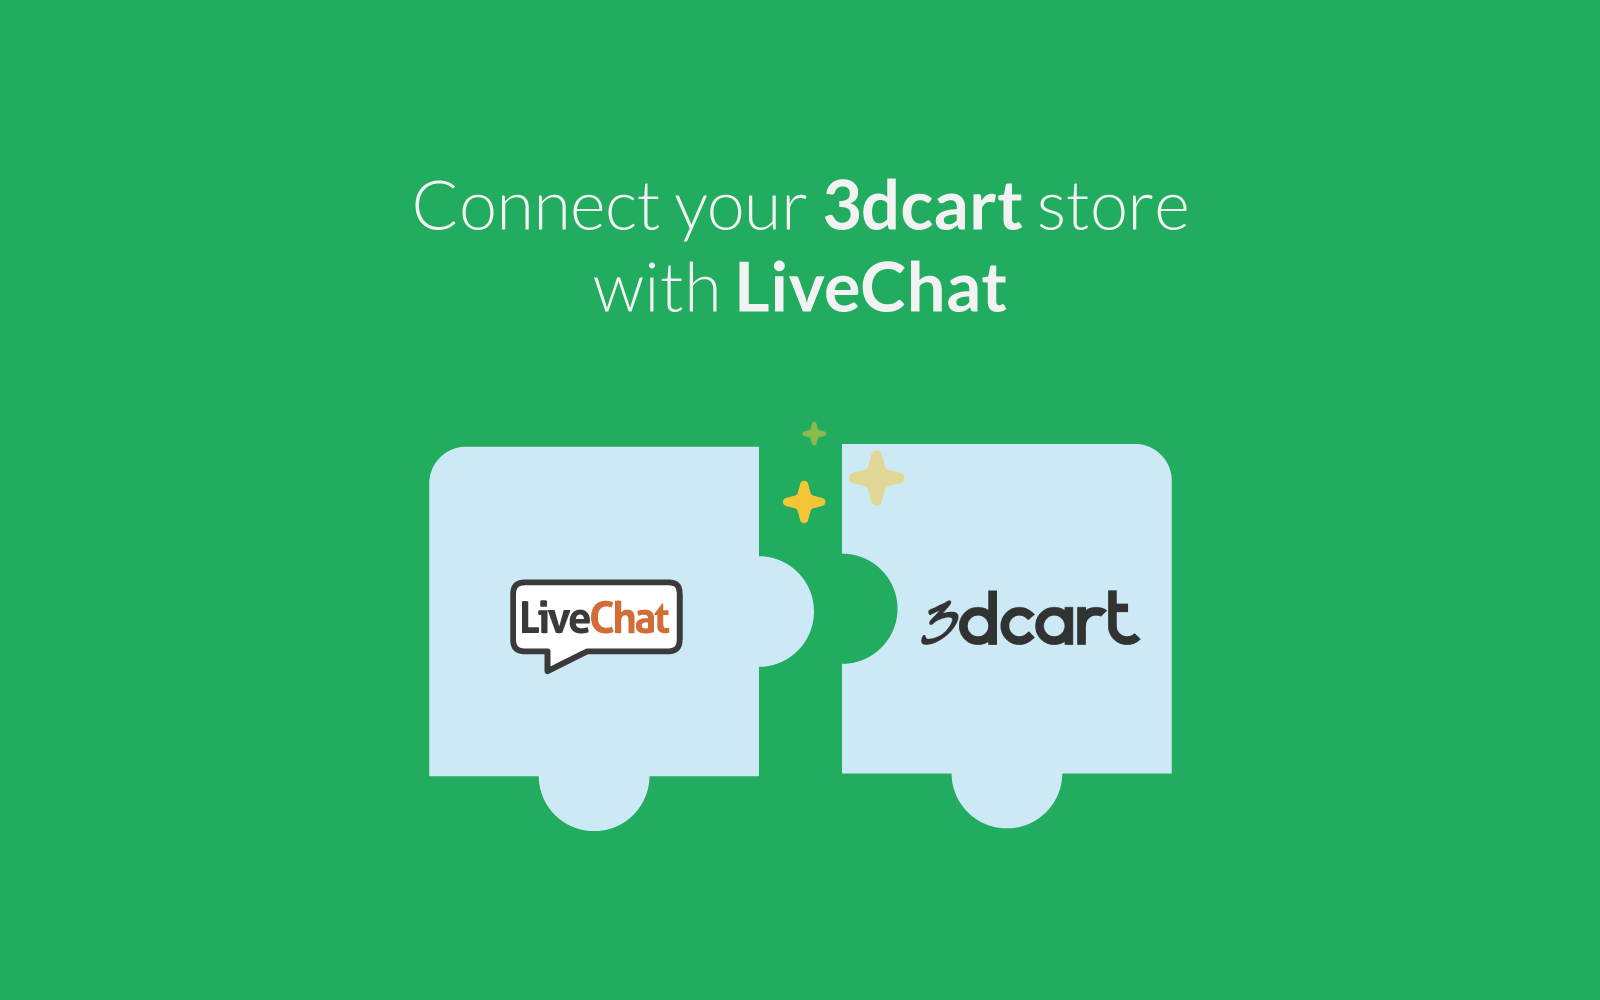 LiveChat integrates with 3dcart